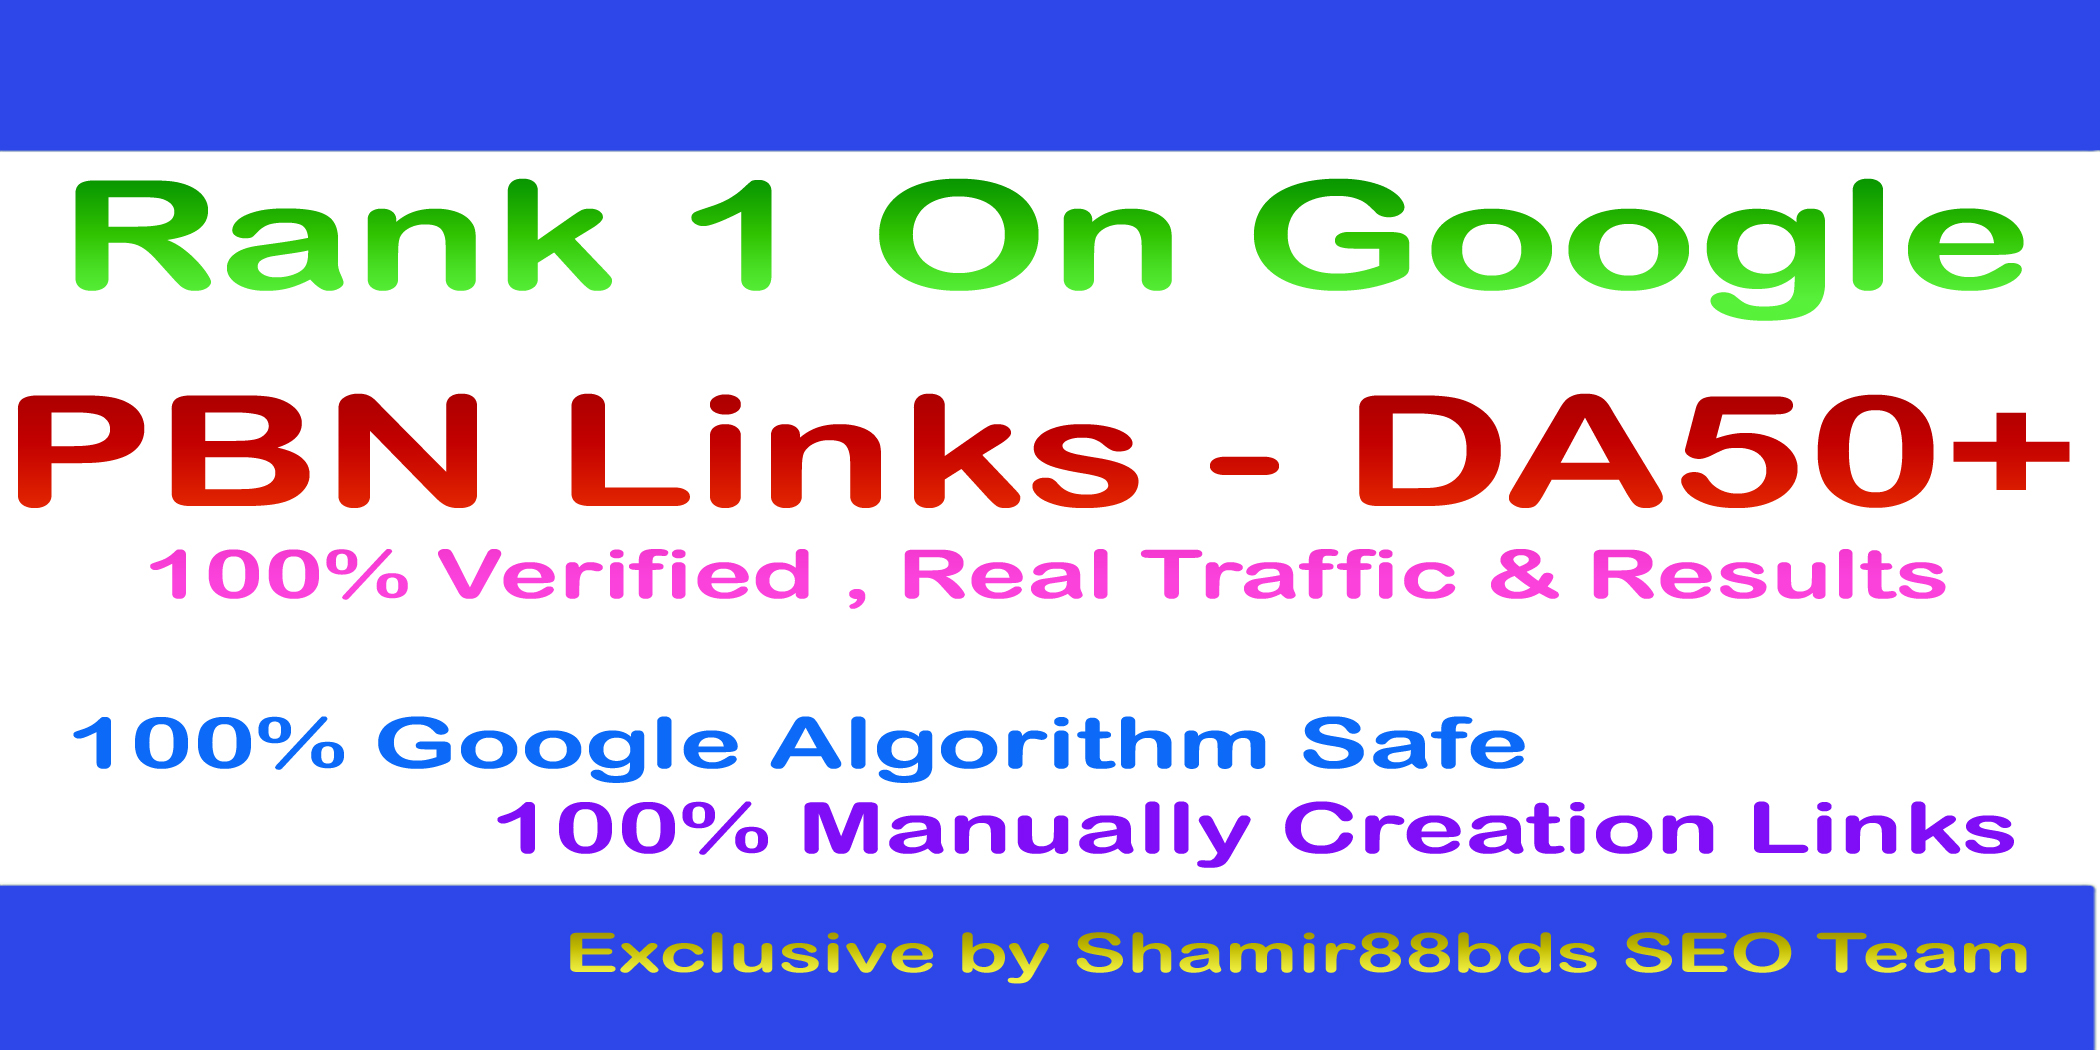 15 PBN Links - DA50+ with Login Details to Rank 1 on Google